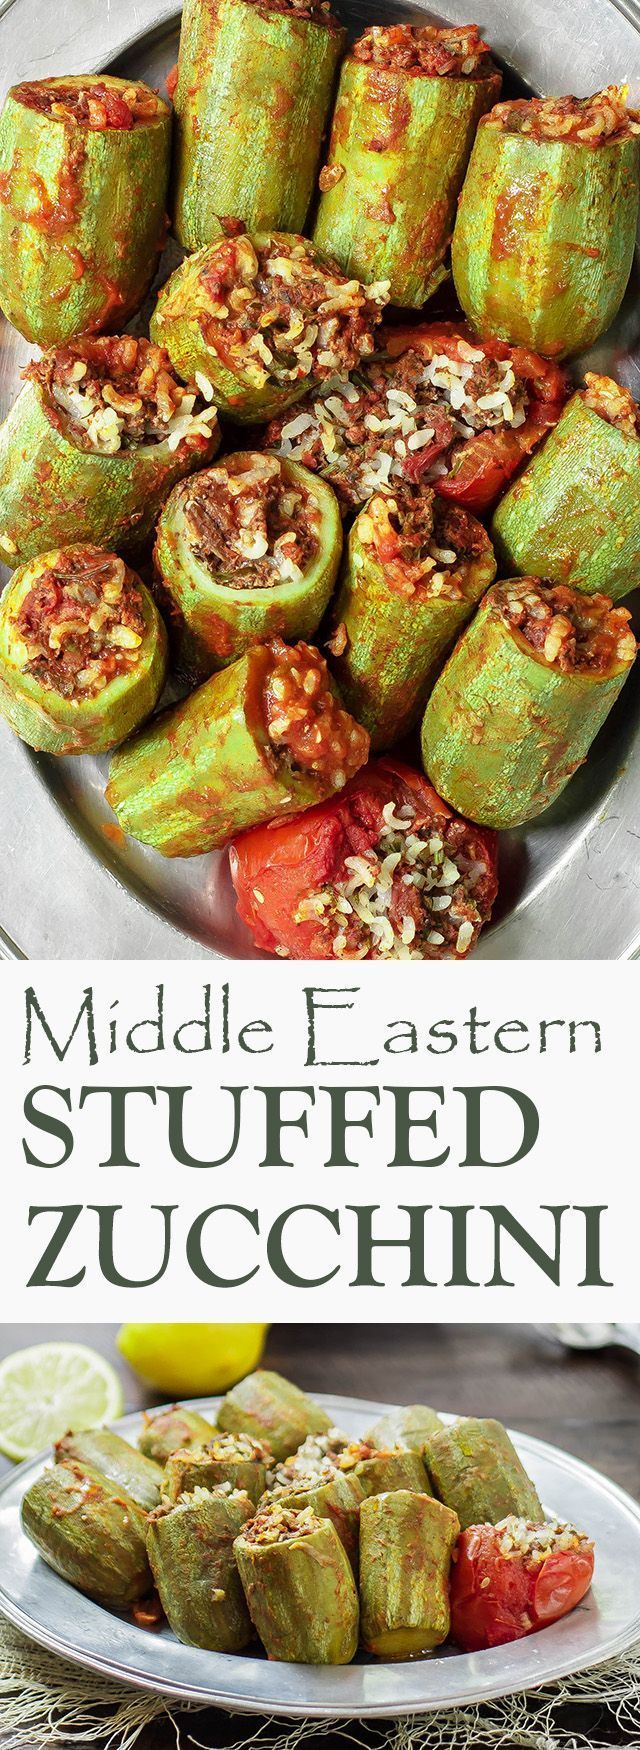 Stuffed Zucchini | The Mediterranean Dish. An all-star stuffed zucchini recipe with a special Middle Eastern style filling of spiced rice, ground beef w/ tomatoes & fresh herbs! Gluten Free! Click the pin image for step-by-step tutorial